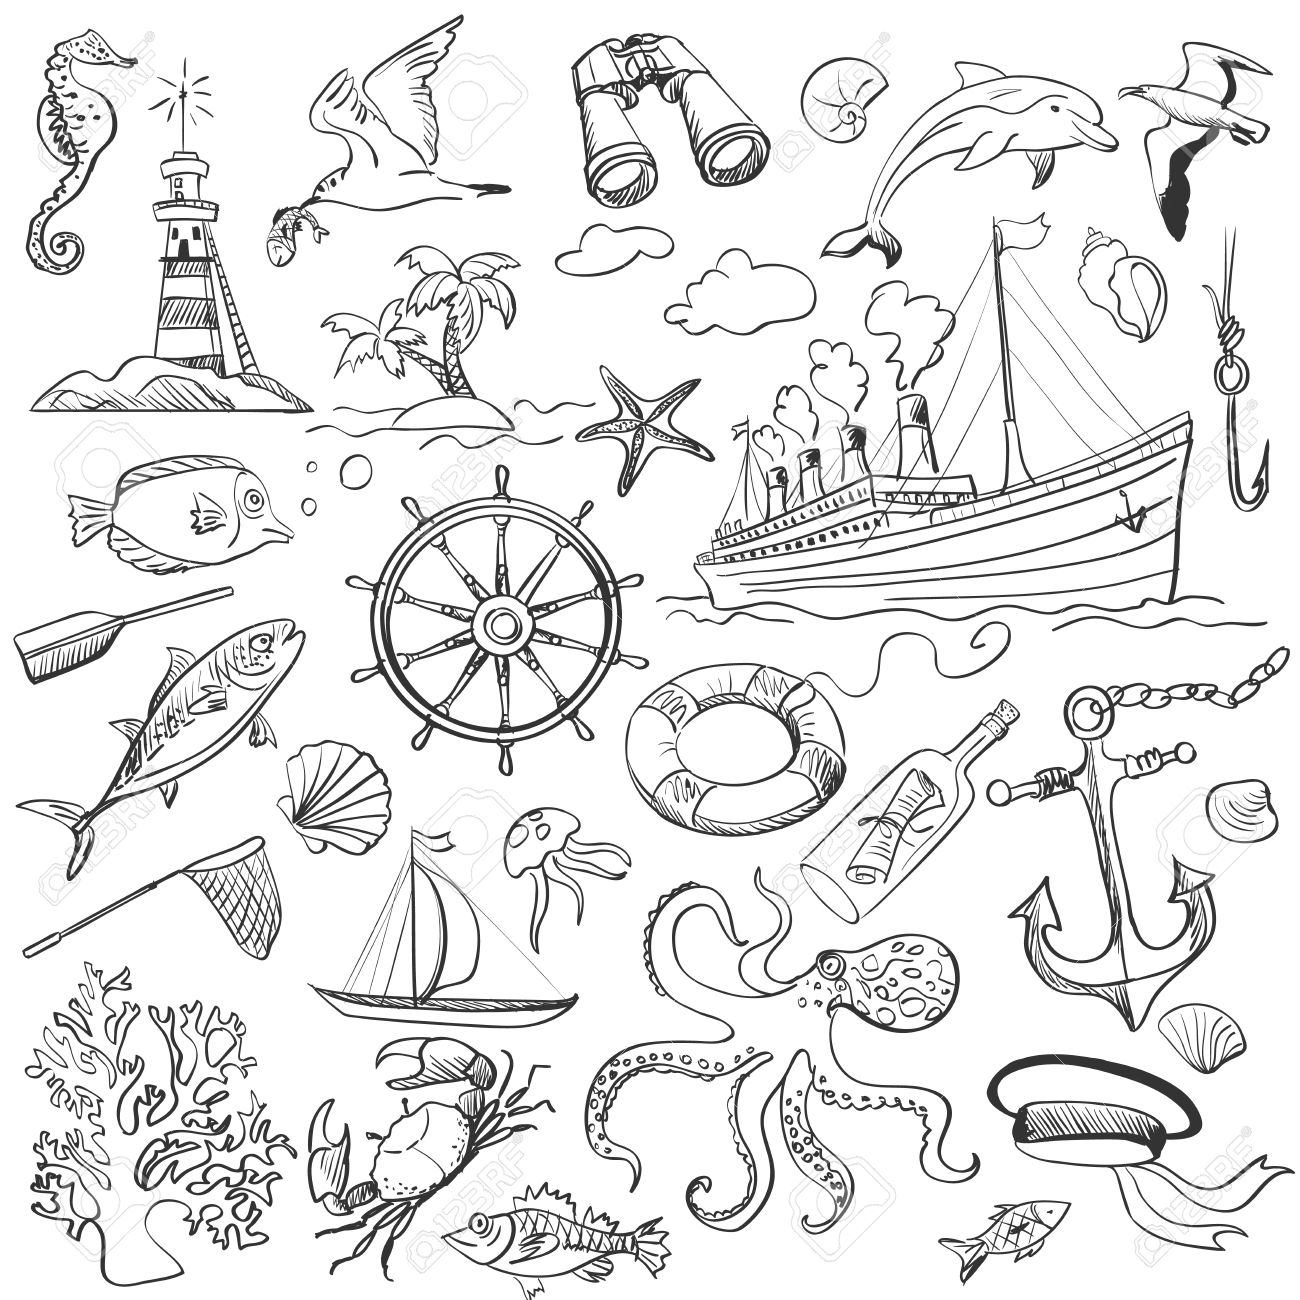 1300x1300 Hand Drawn Elements Of Marine Theme With A Lighthouse, Ships